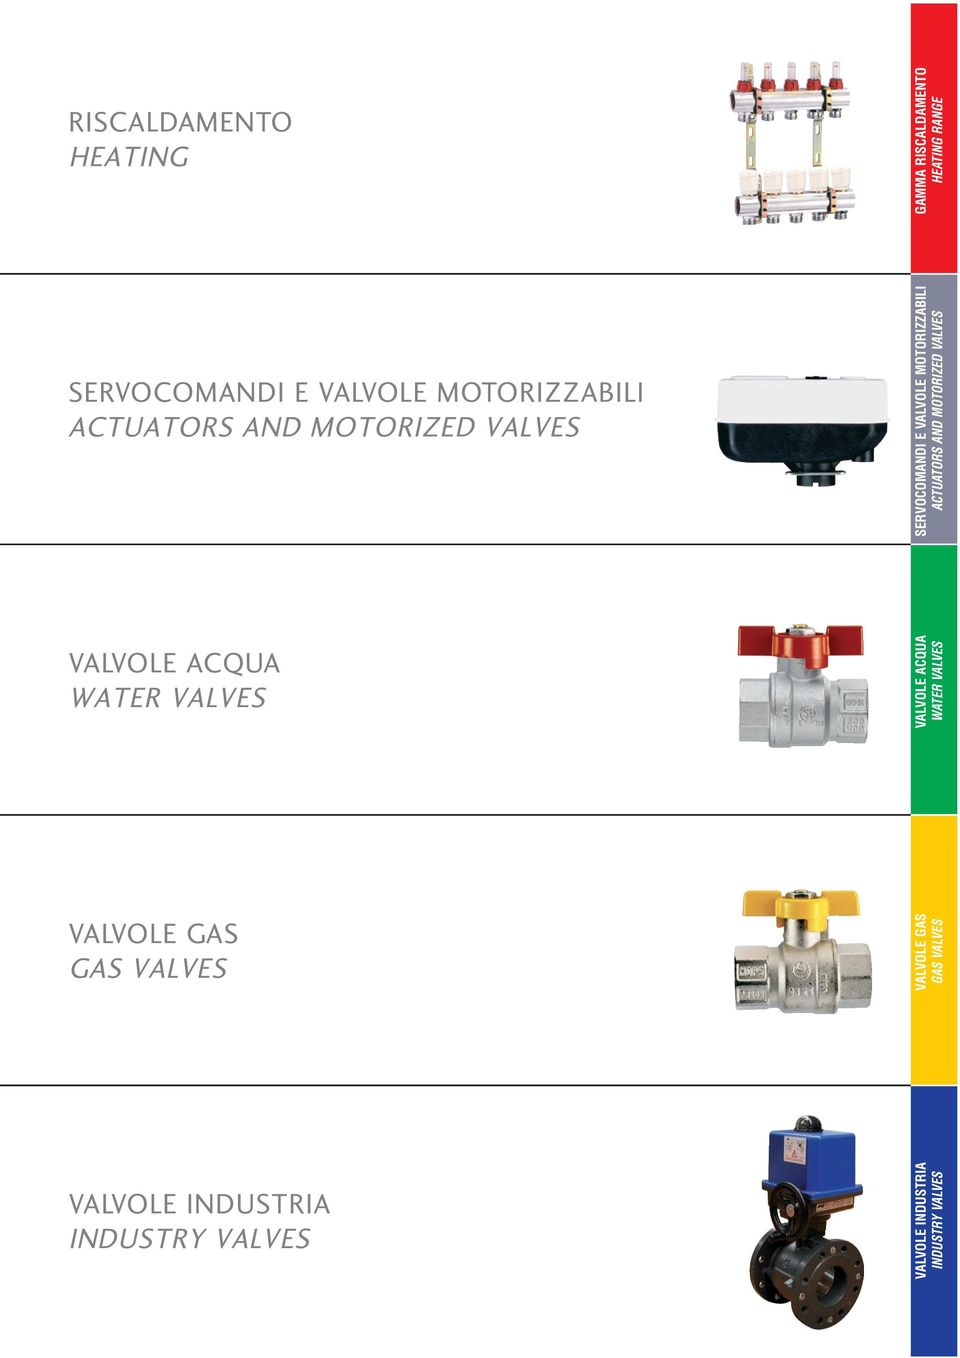 ACTUATORS AND MOTORIZED VALVES VALVOLE ACQUA WATER VALVES VALVOLE ACQUA WATER VALVES